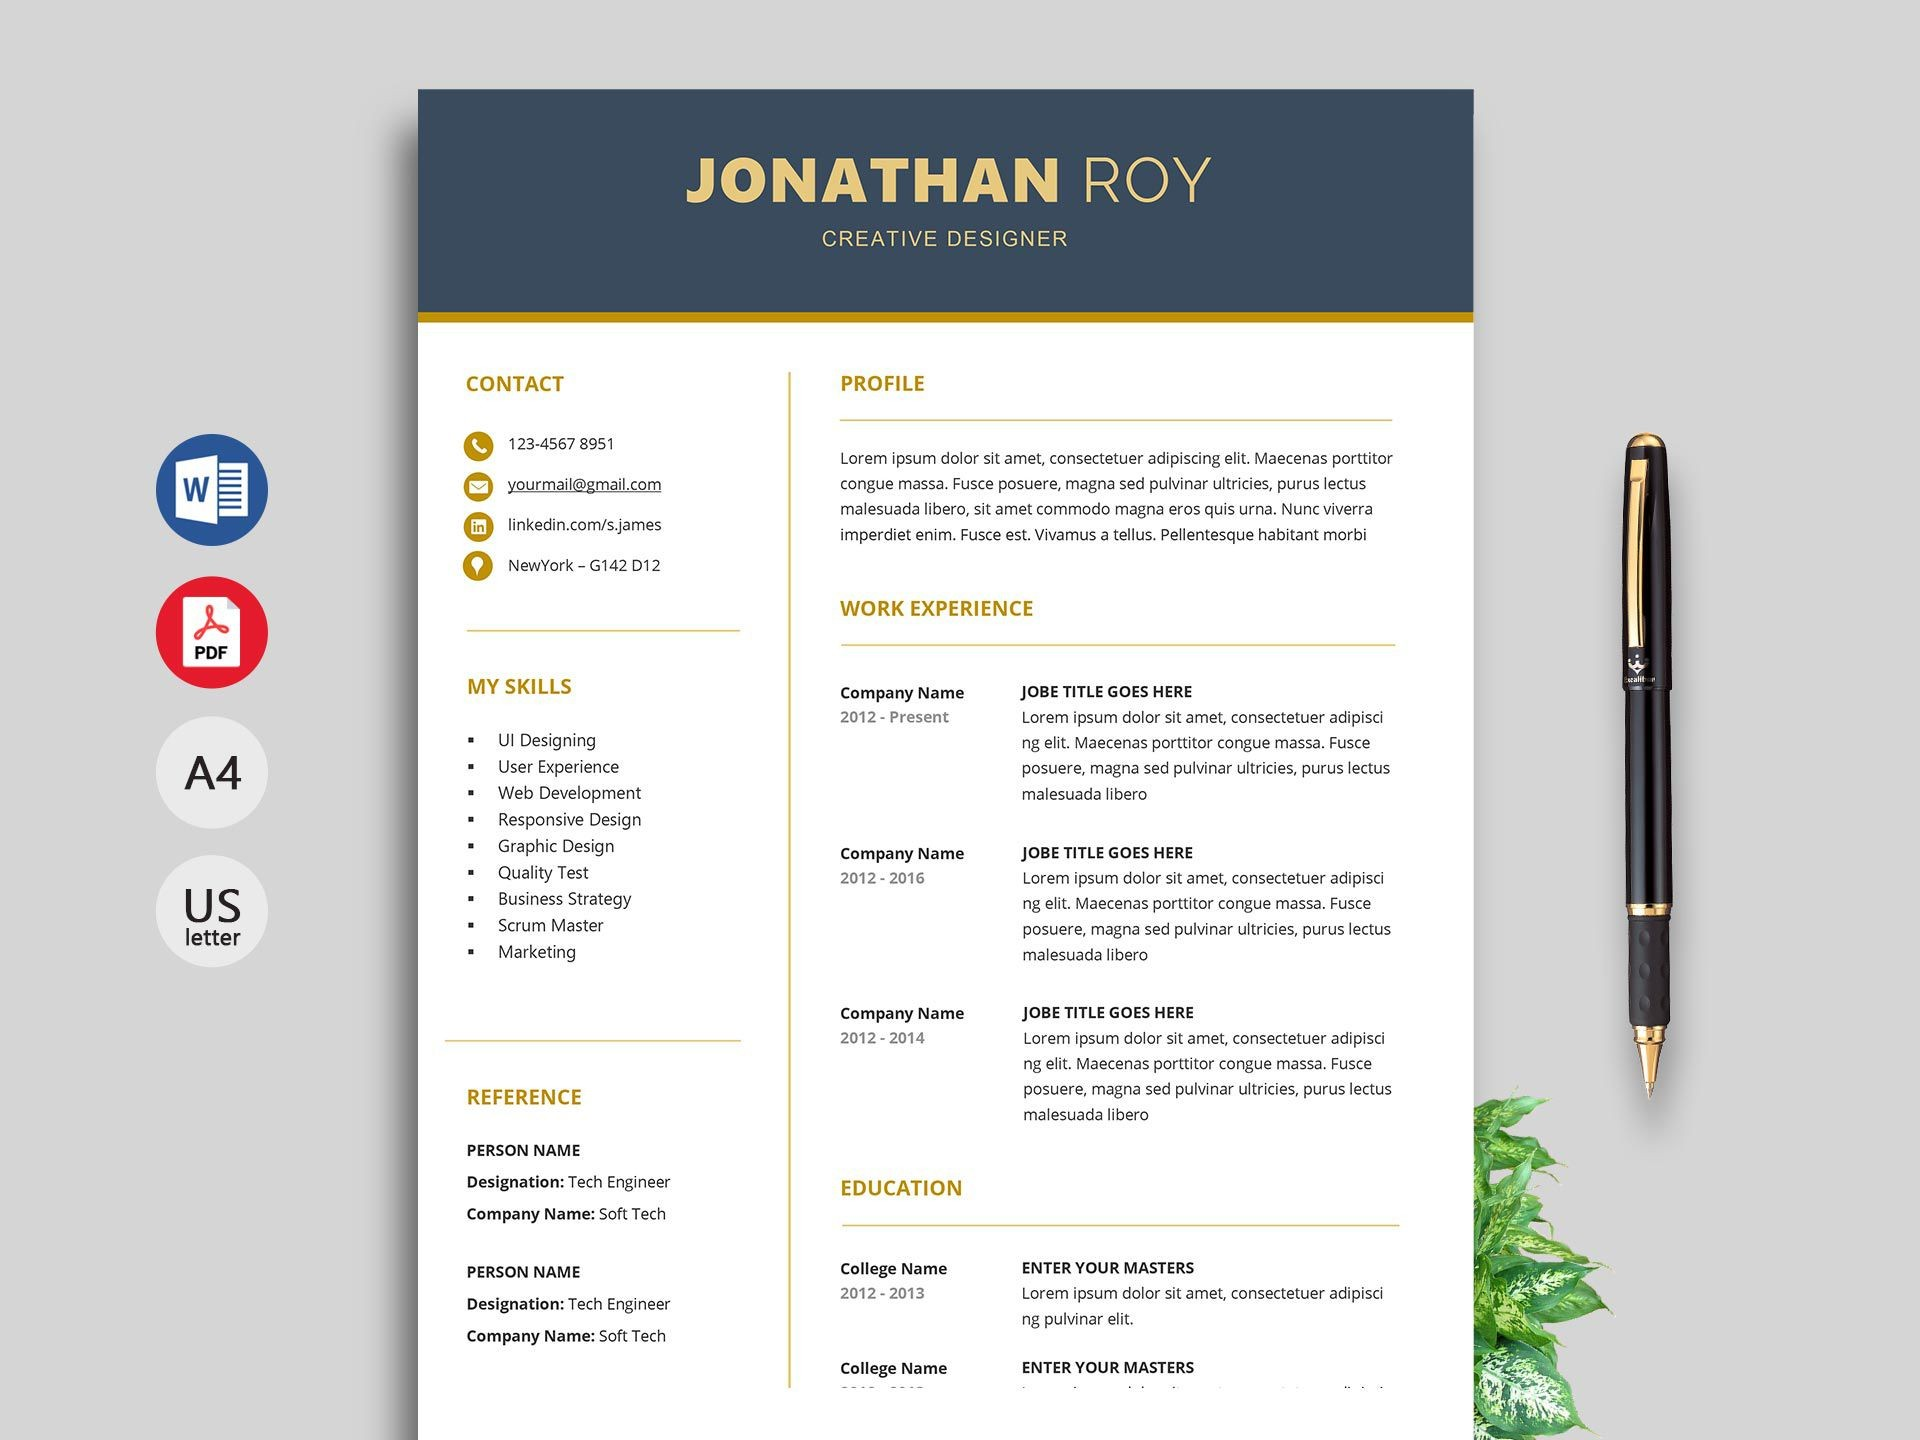 004 Shocking Download Resume Sample In Word Format Highest Clarity  Driver Cv Free Best Template1920